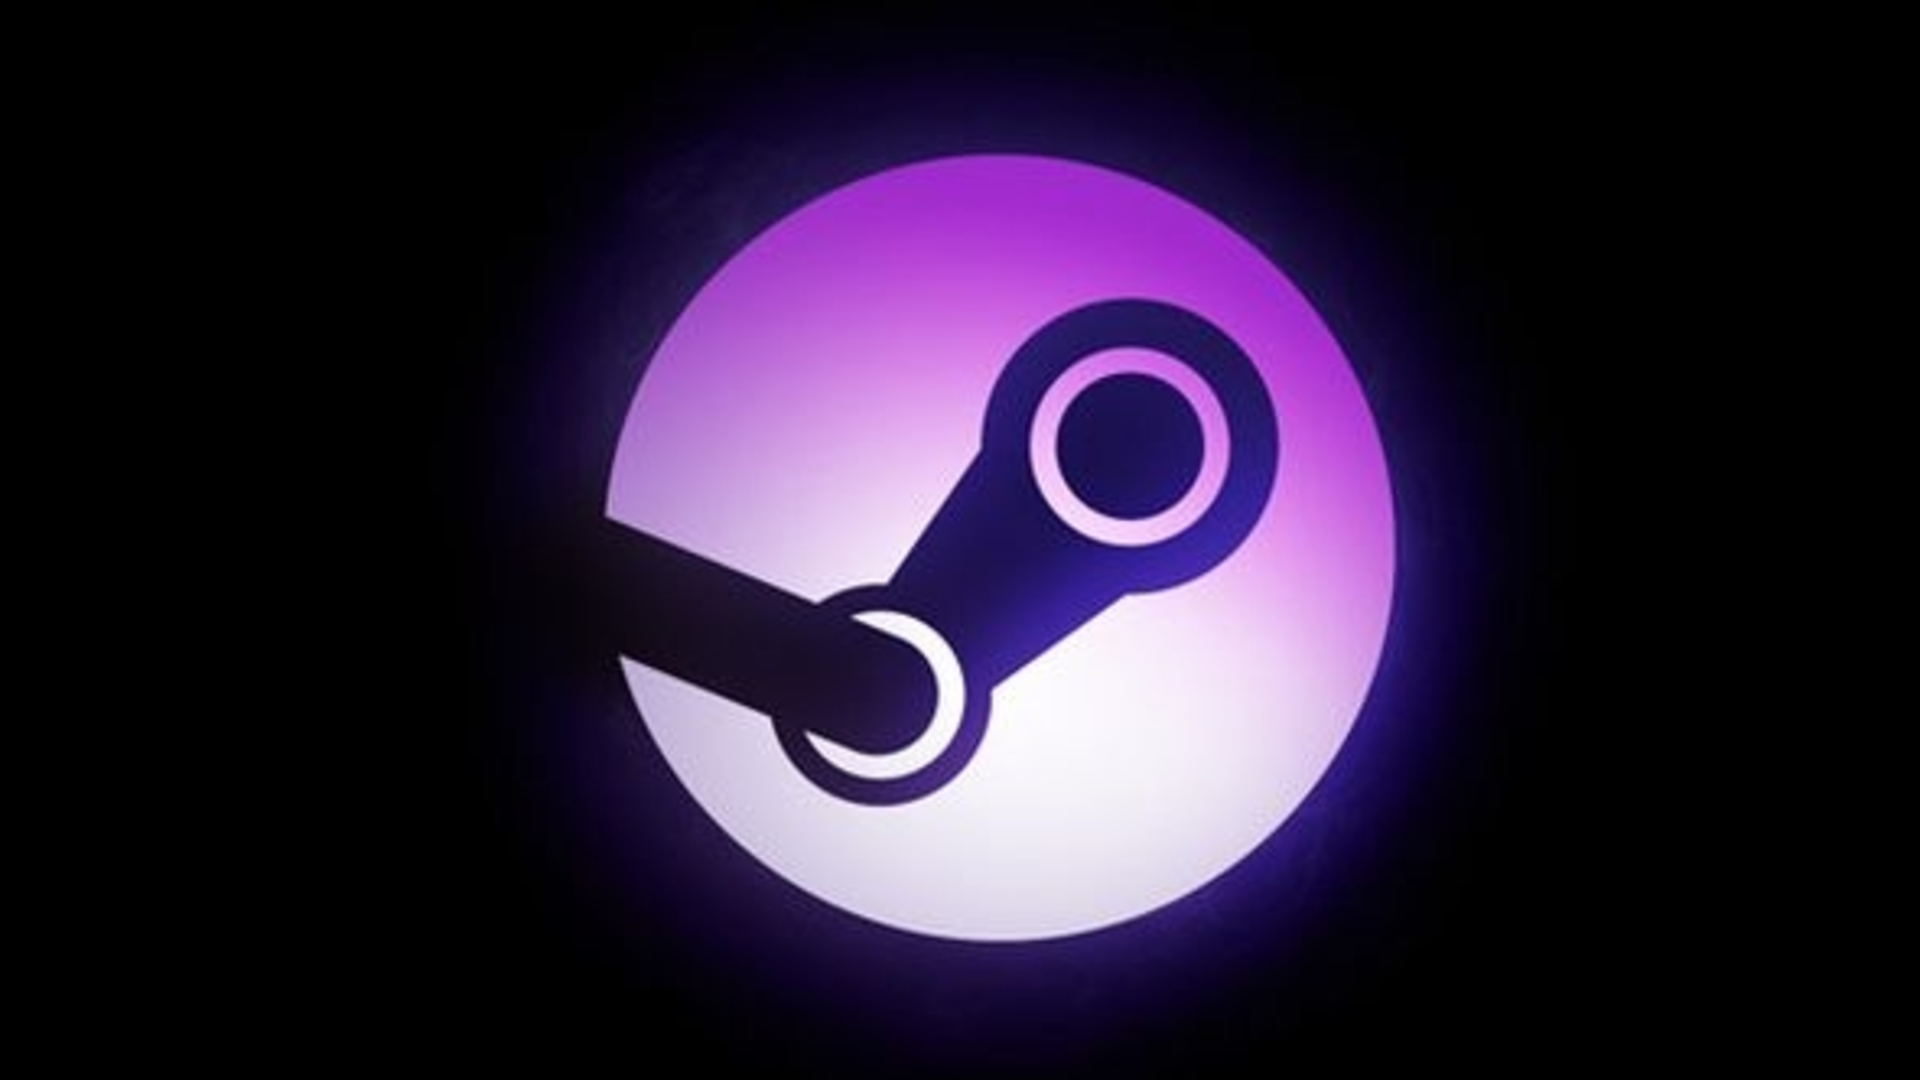 You can fill your Steam library with animated icons now